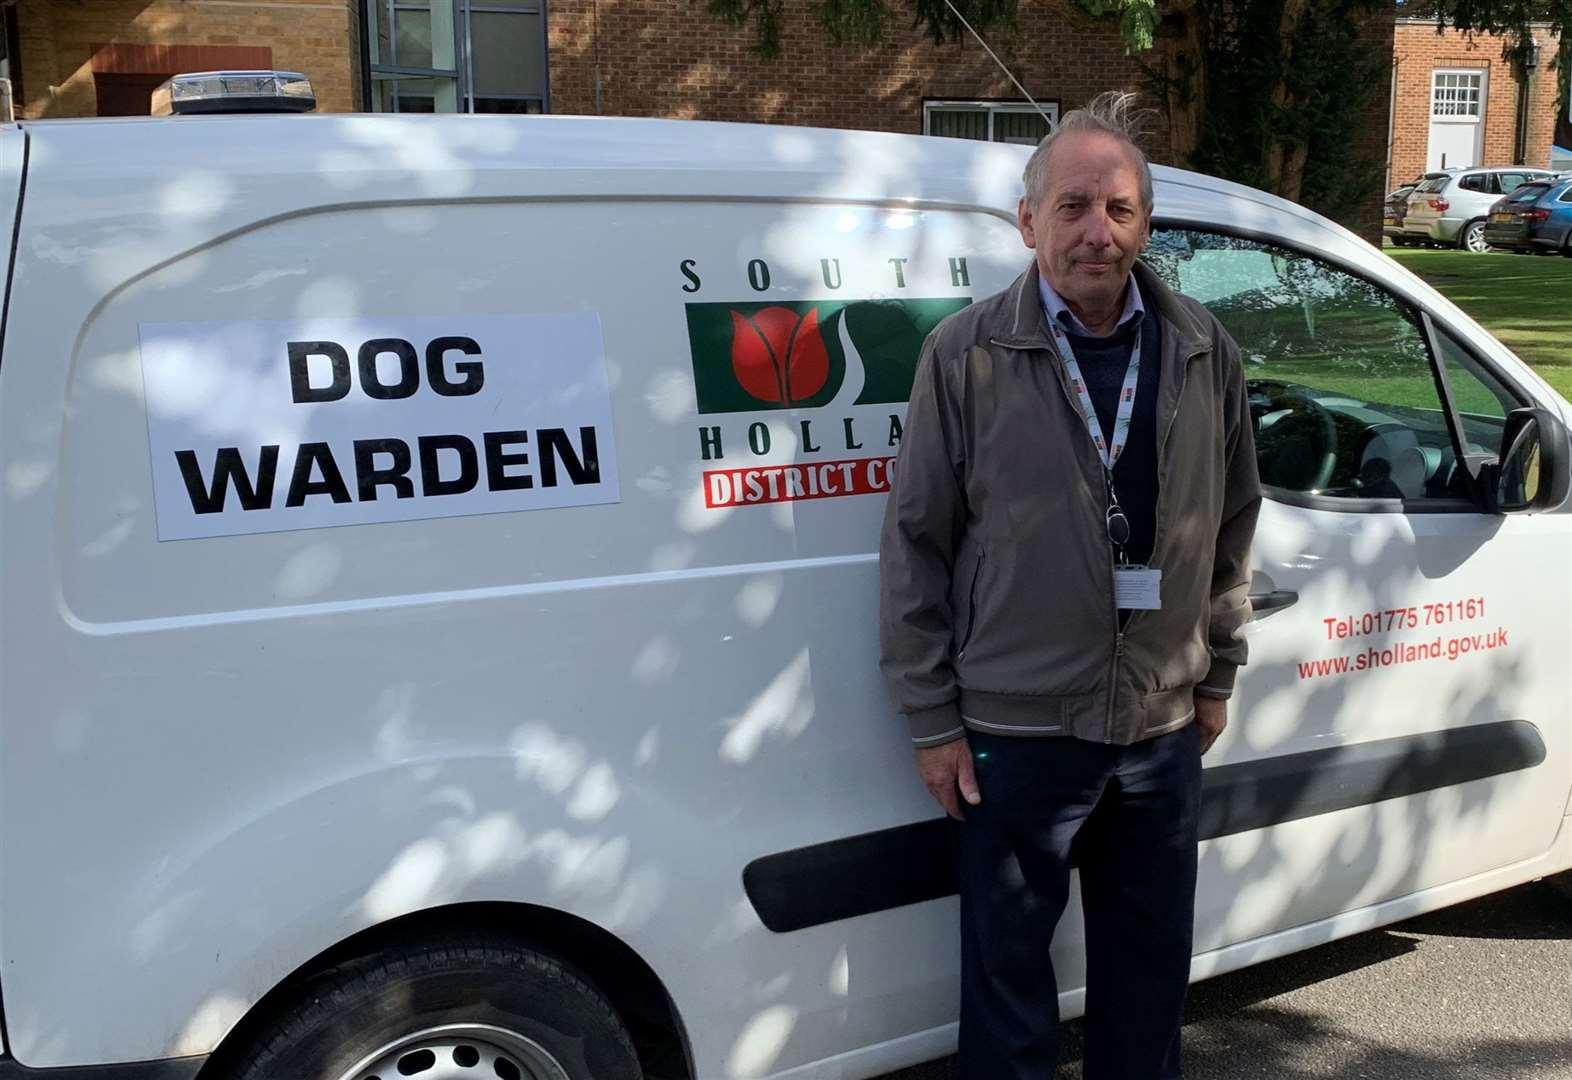 Award for care given to stray dogs in area